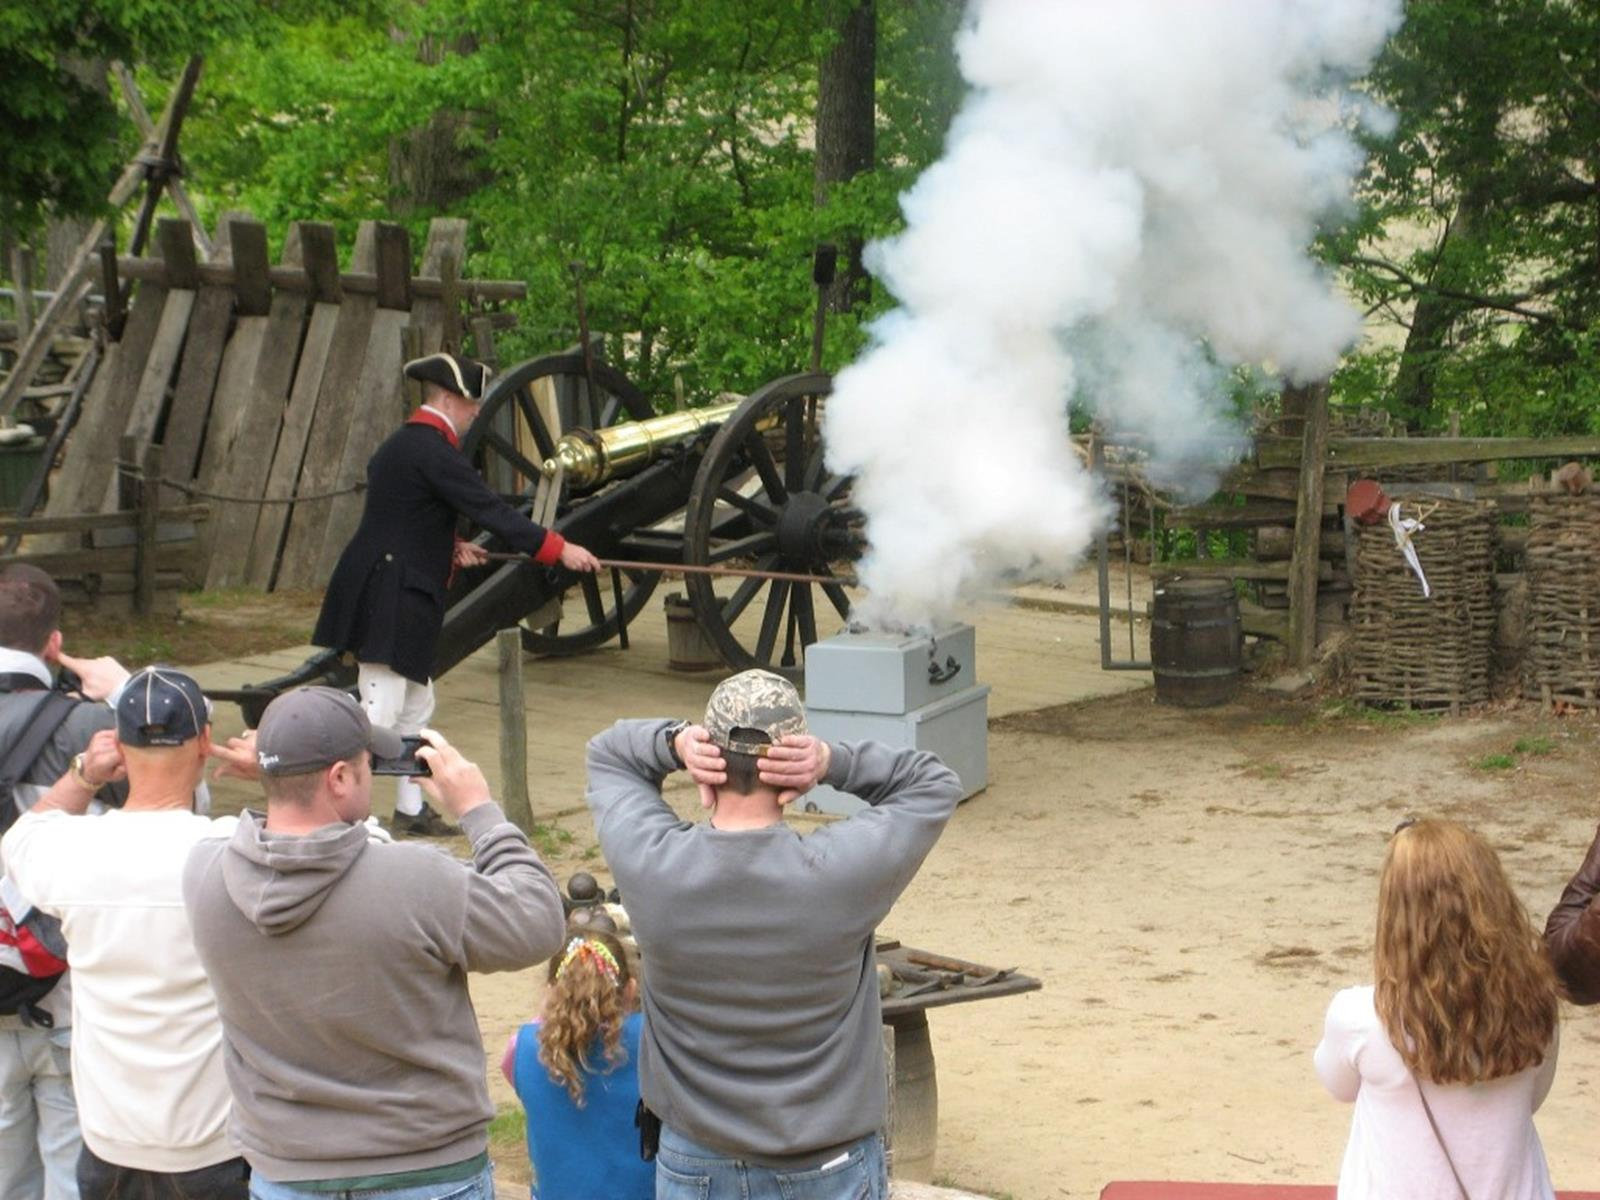 Visitors cover their ears as a mortar is fired in the Yorktown Victory Center's re-created Continental Army encampment. Credit: the Jamestown-Yorktown Foundation.